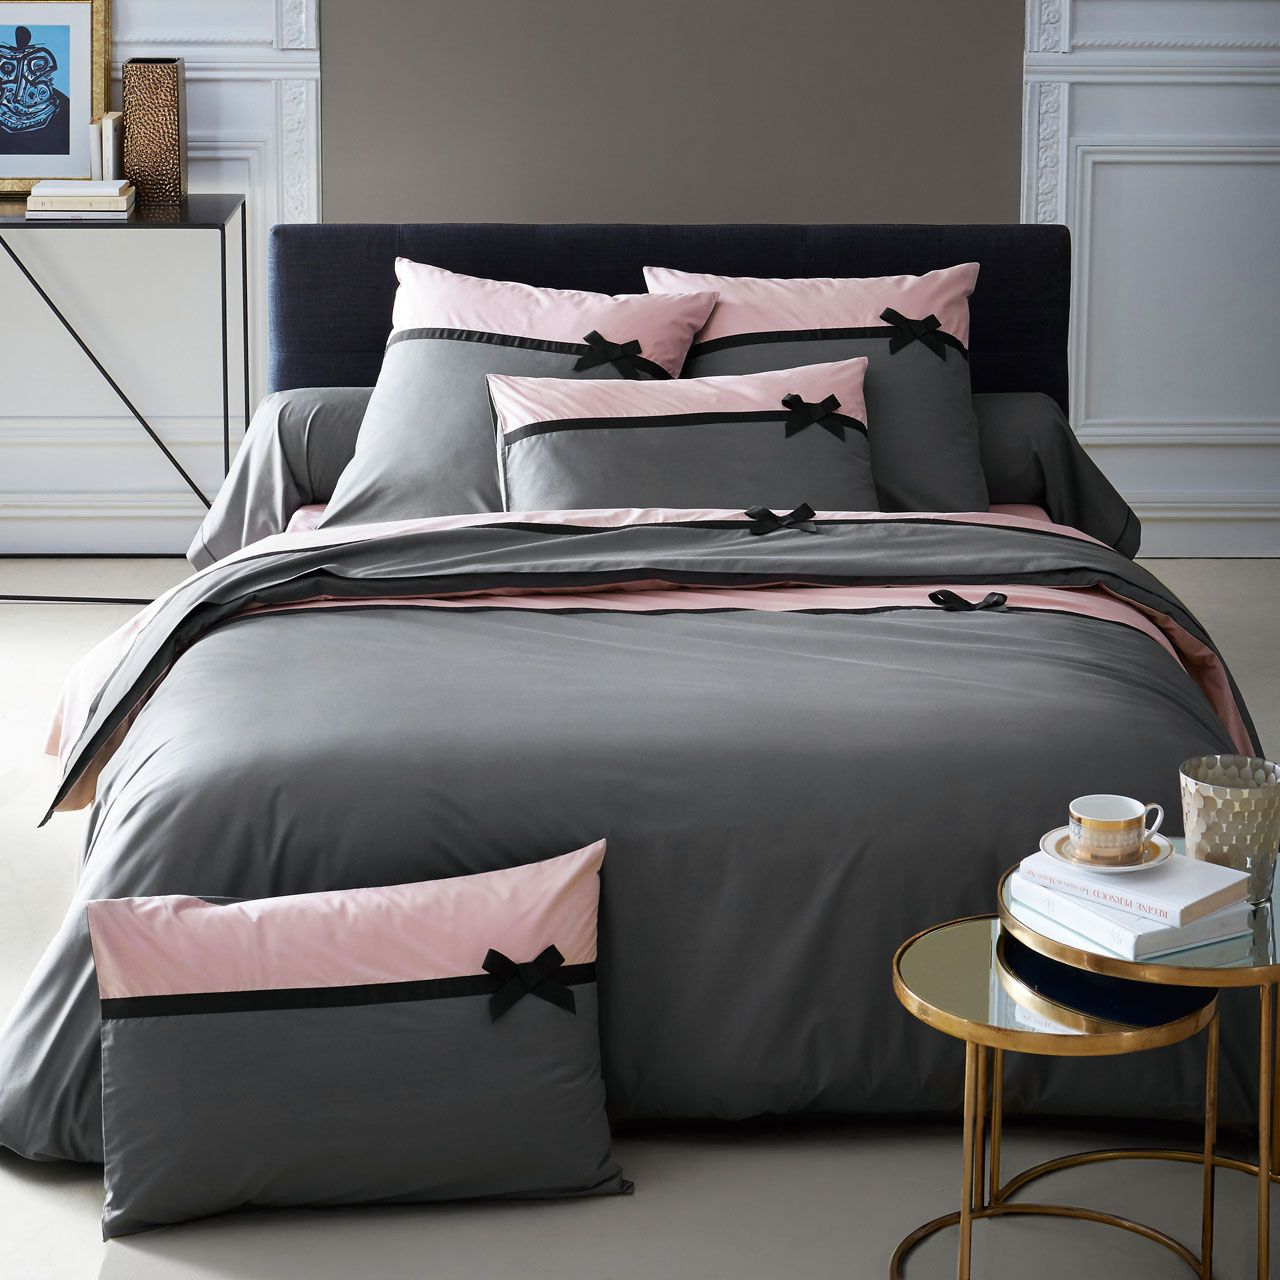 housse de couette percale frou frou anthracite 140x200 tradilinge. Black Bedroom Furniture Sets. Home Design Ideas